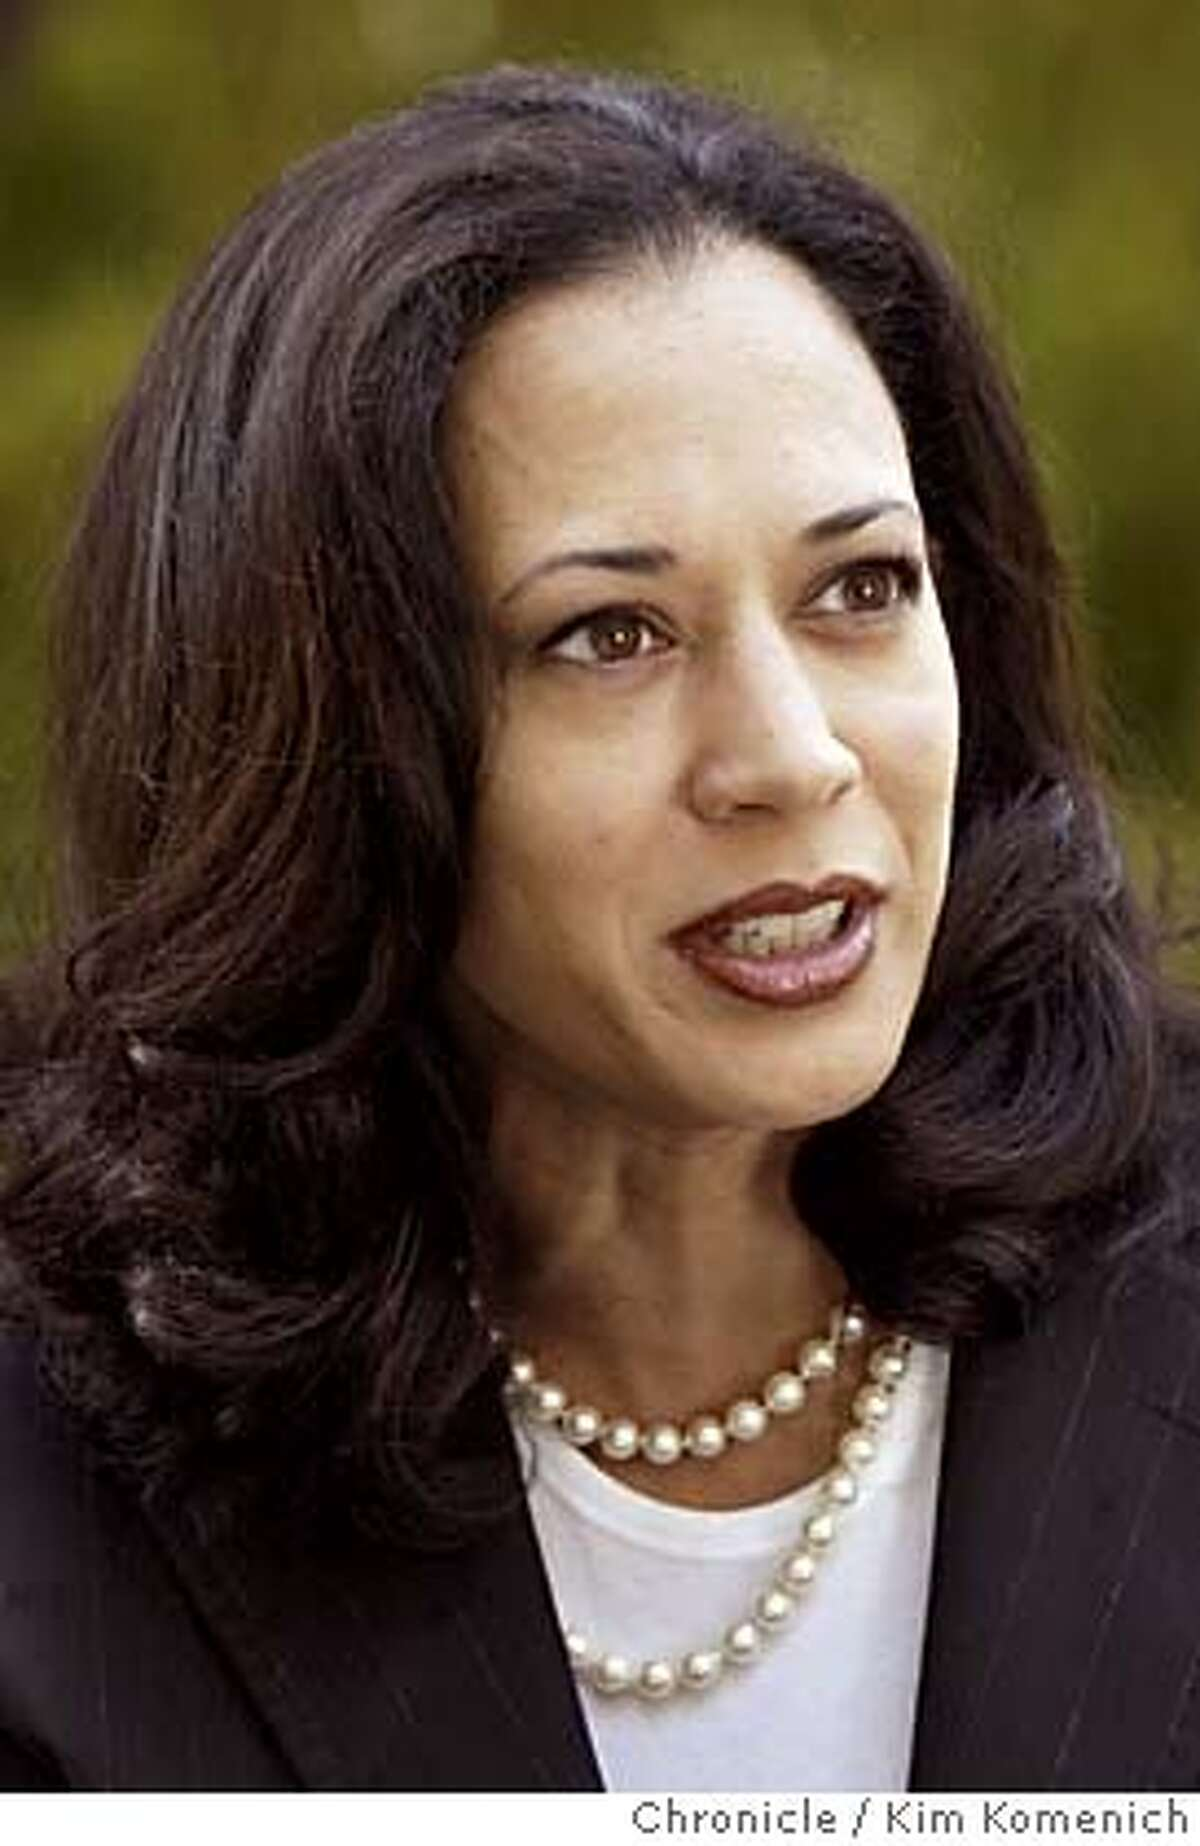 MATIERROSS_005_kk.jpg San Francisco District Attorney Kamala Harris talks with Matier and Ross. We seek a series of headshots that can be used as a triptych, I am told Chronicle photo by Kim Komenich in San Francisco. District Attorney Kamala Harris District Attorney Kamala Harris seeks a life sentence for an alleged cop killer. D.A. Kamala Harris seeks a life sentence -- but not death -- for an alleged cop killer. Kamala Harris will speak at SFUSDs parent convention about safety for students. Kamala Harris will speak at SFUSDs parent convention about safety for students. Ran on: 09-13-2004 Kamala Harris Ran on: 09-13-2004 Kamala Harris MANDATORY CREDIT FOR PHOTOG AND SF CHRONICLE/ -MAGS OUT